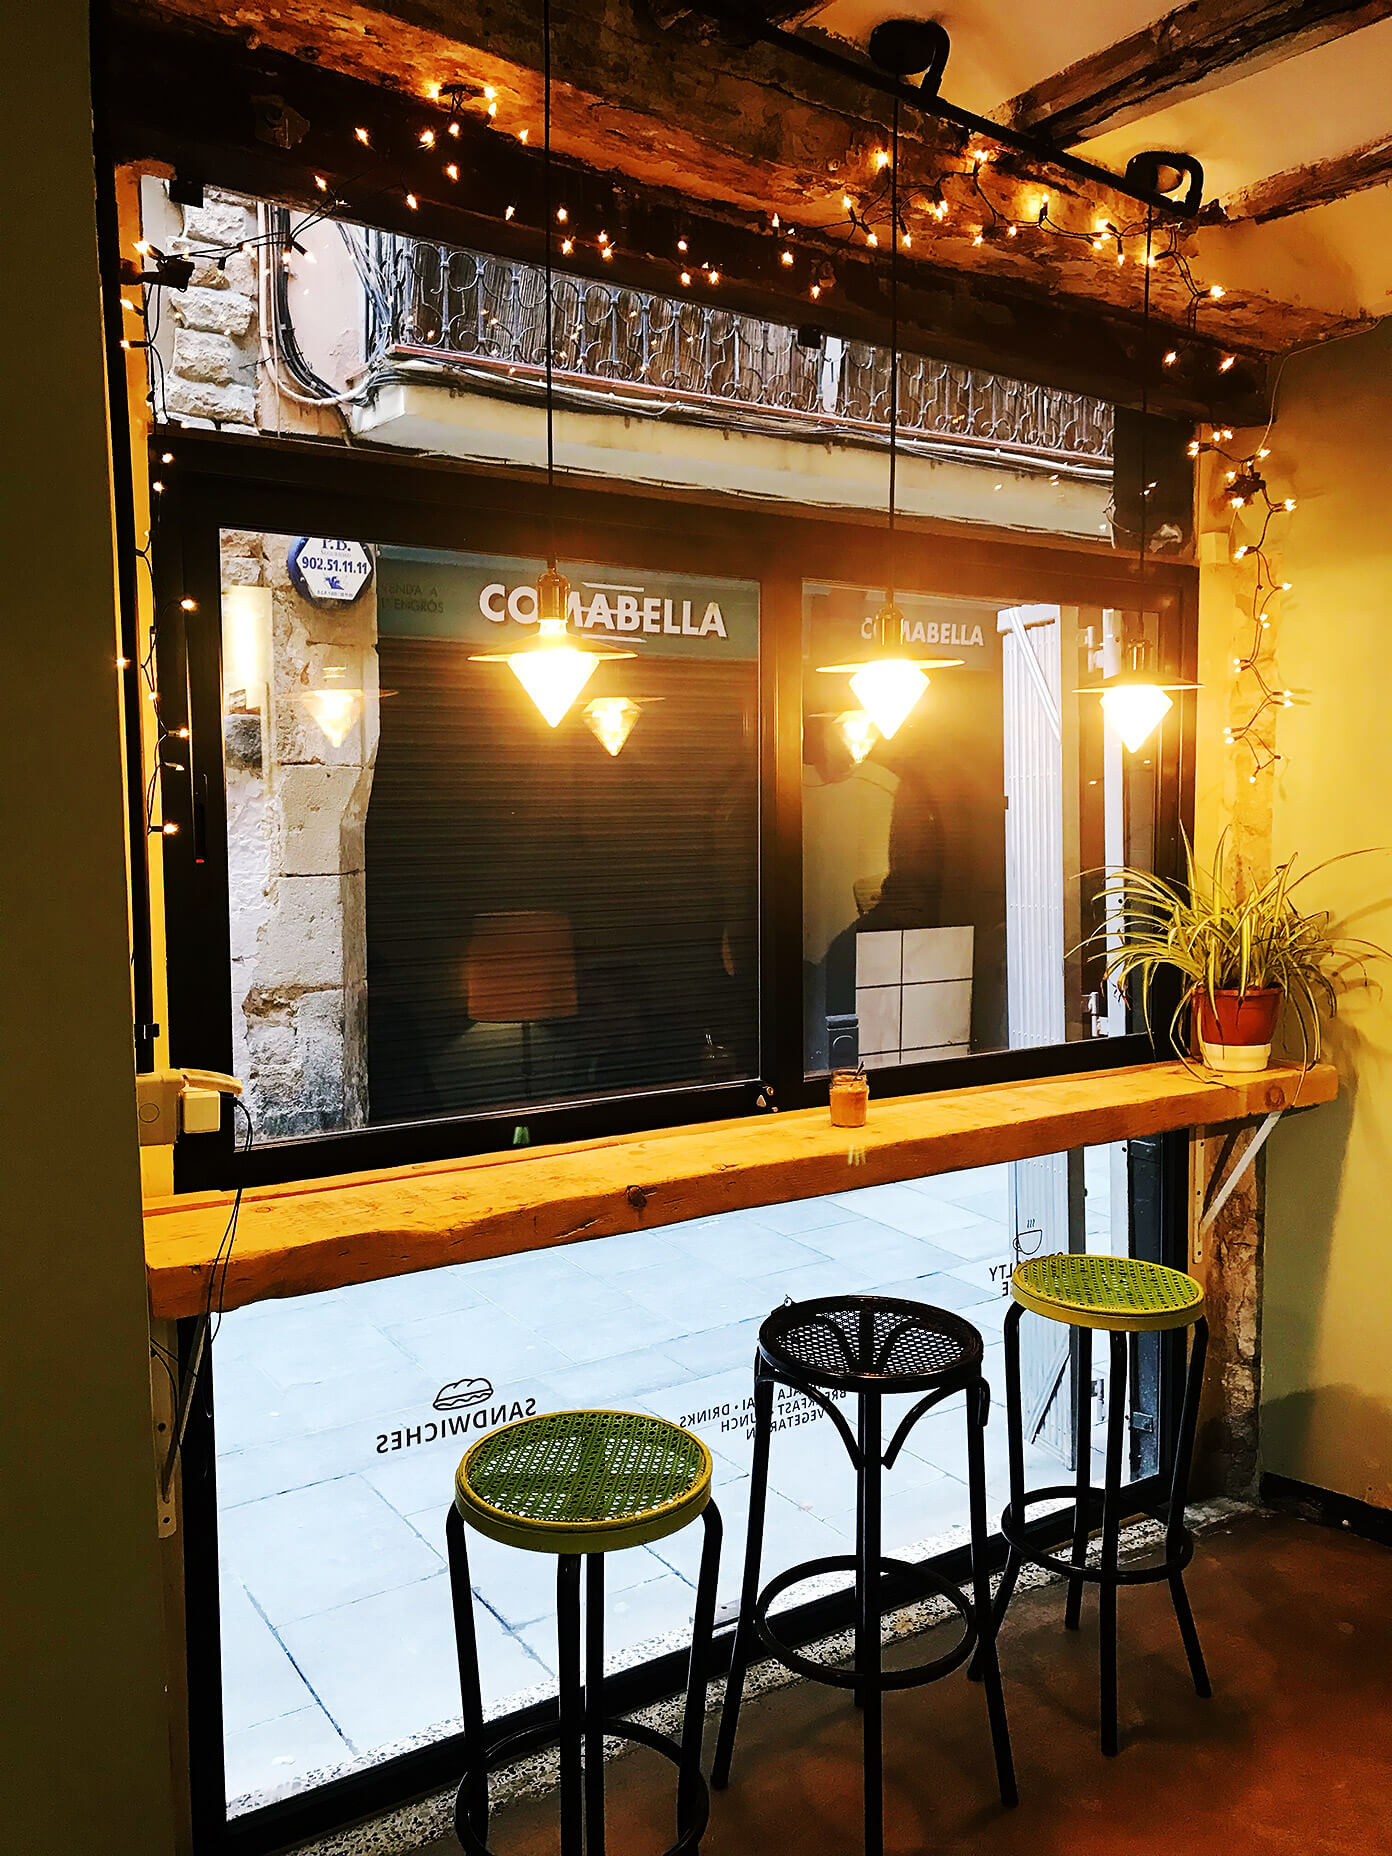 La Masala - our favorite coffee shop in town | Gimme Some Barcelona Travel Guide